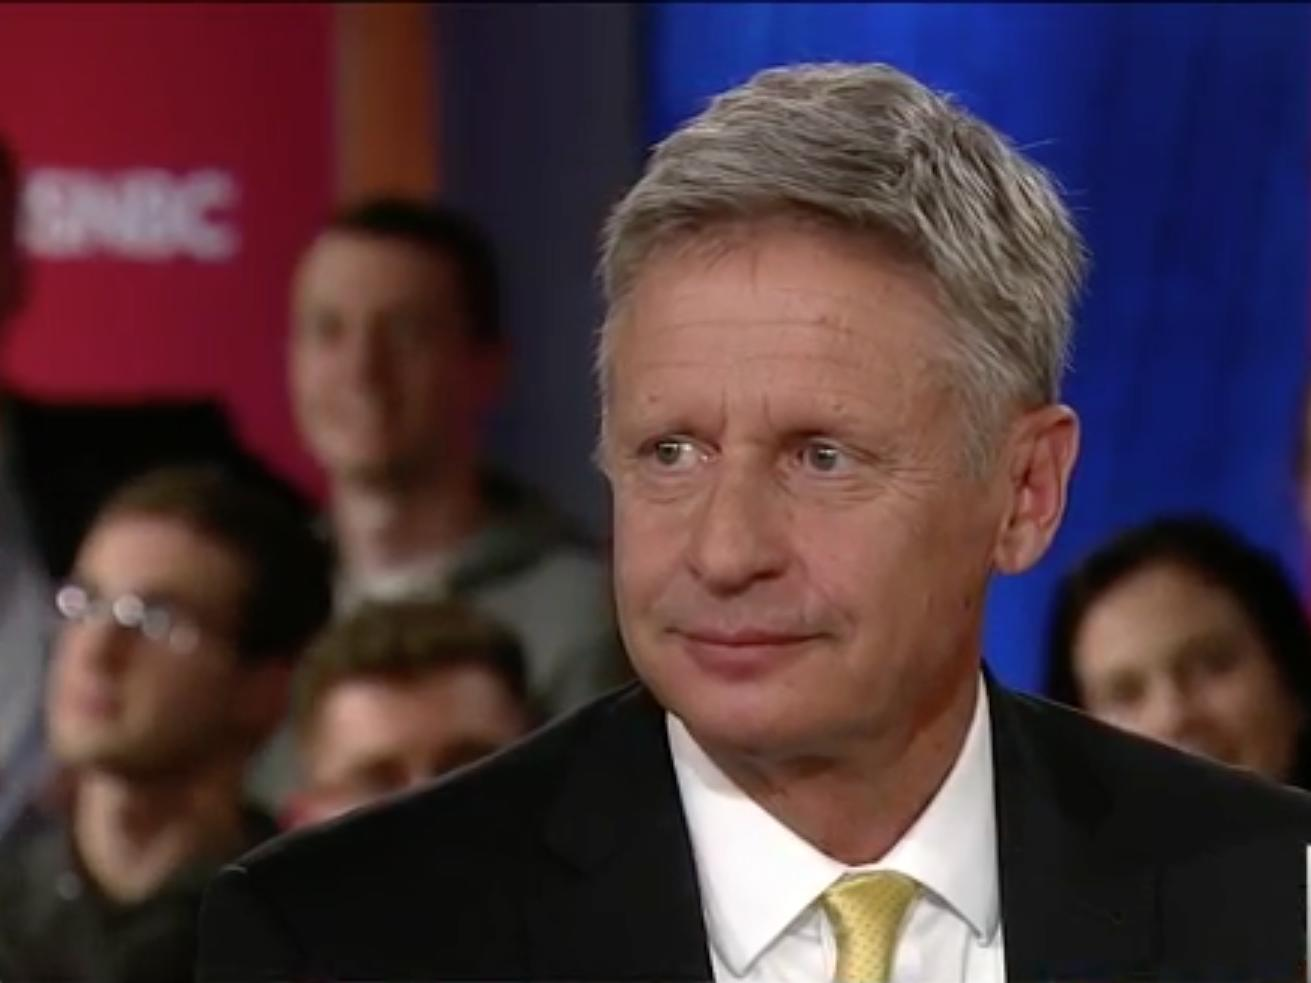 Gary Johnson says he had an 'Aleppo moment' when he struggled to name a foreign leader he liked